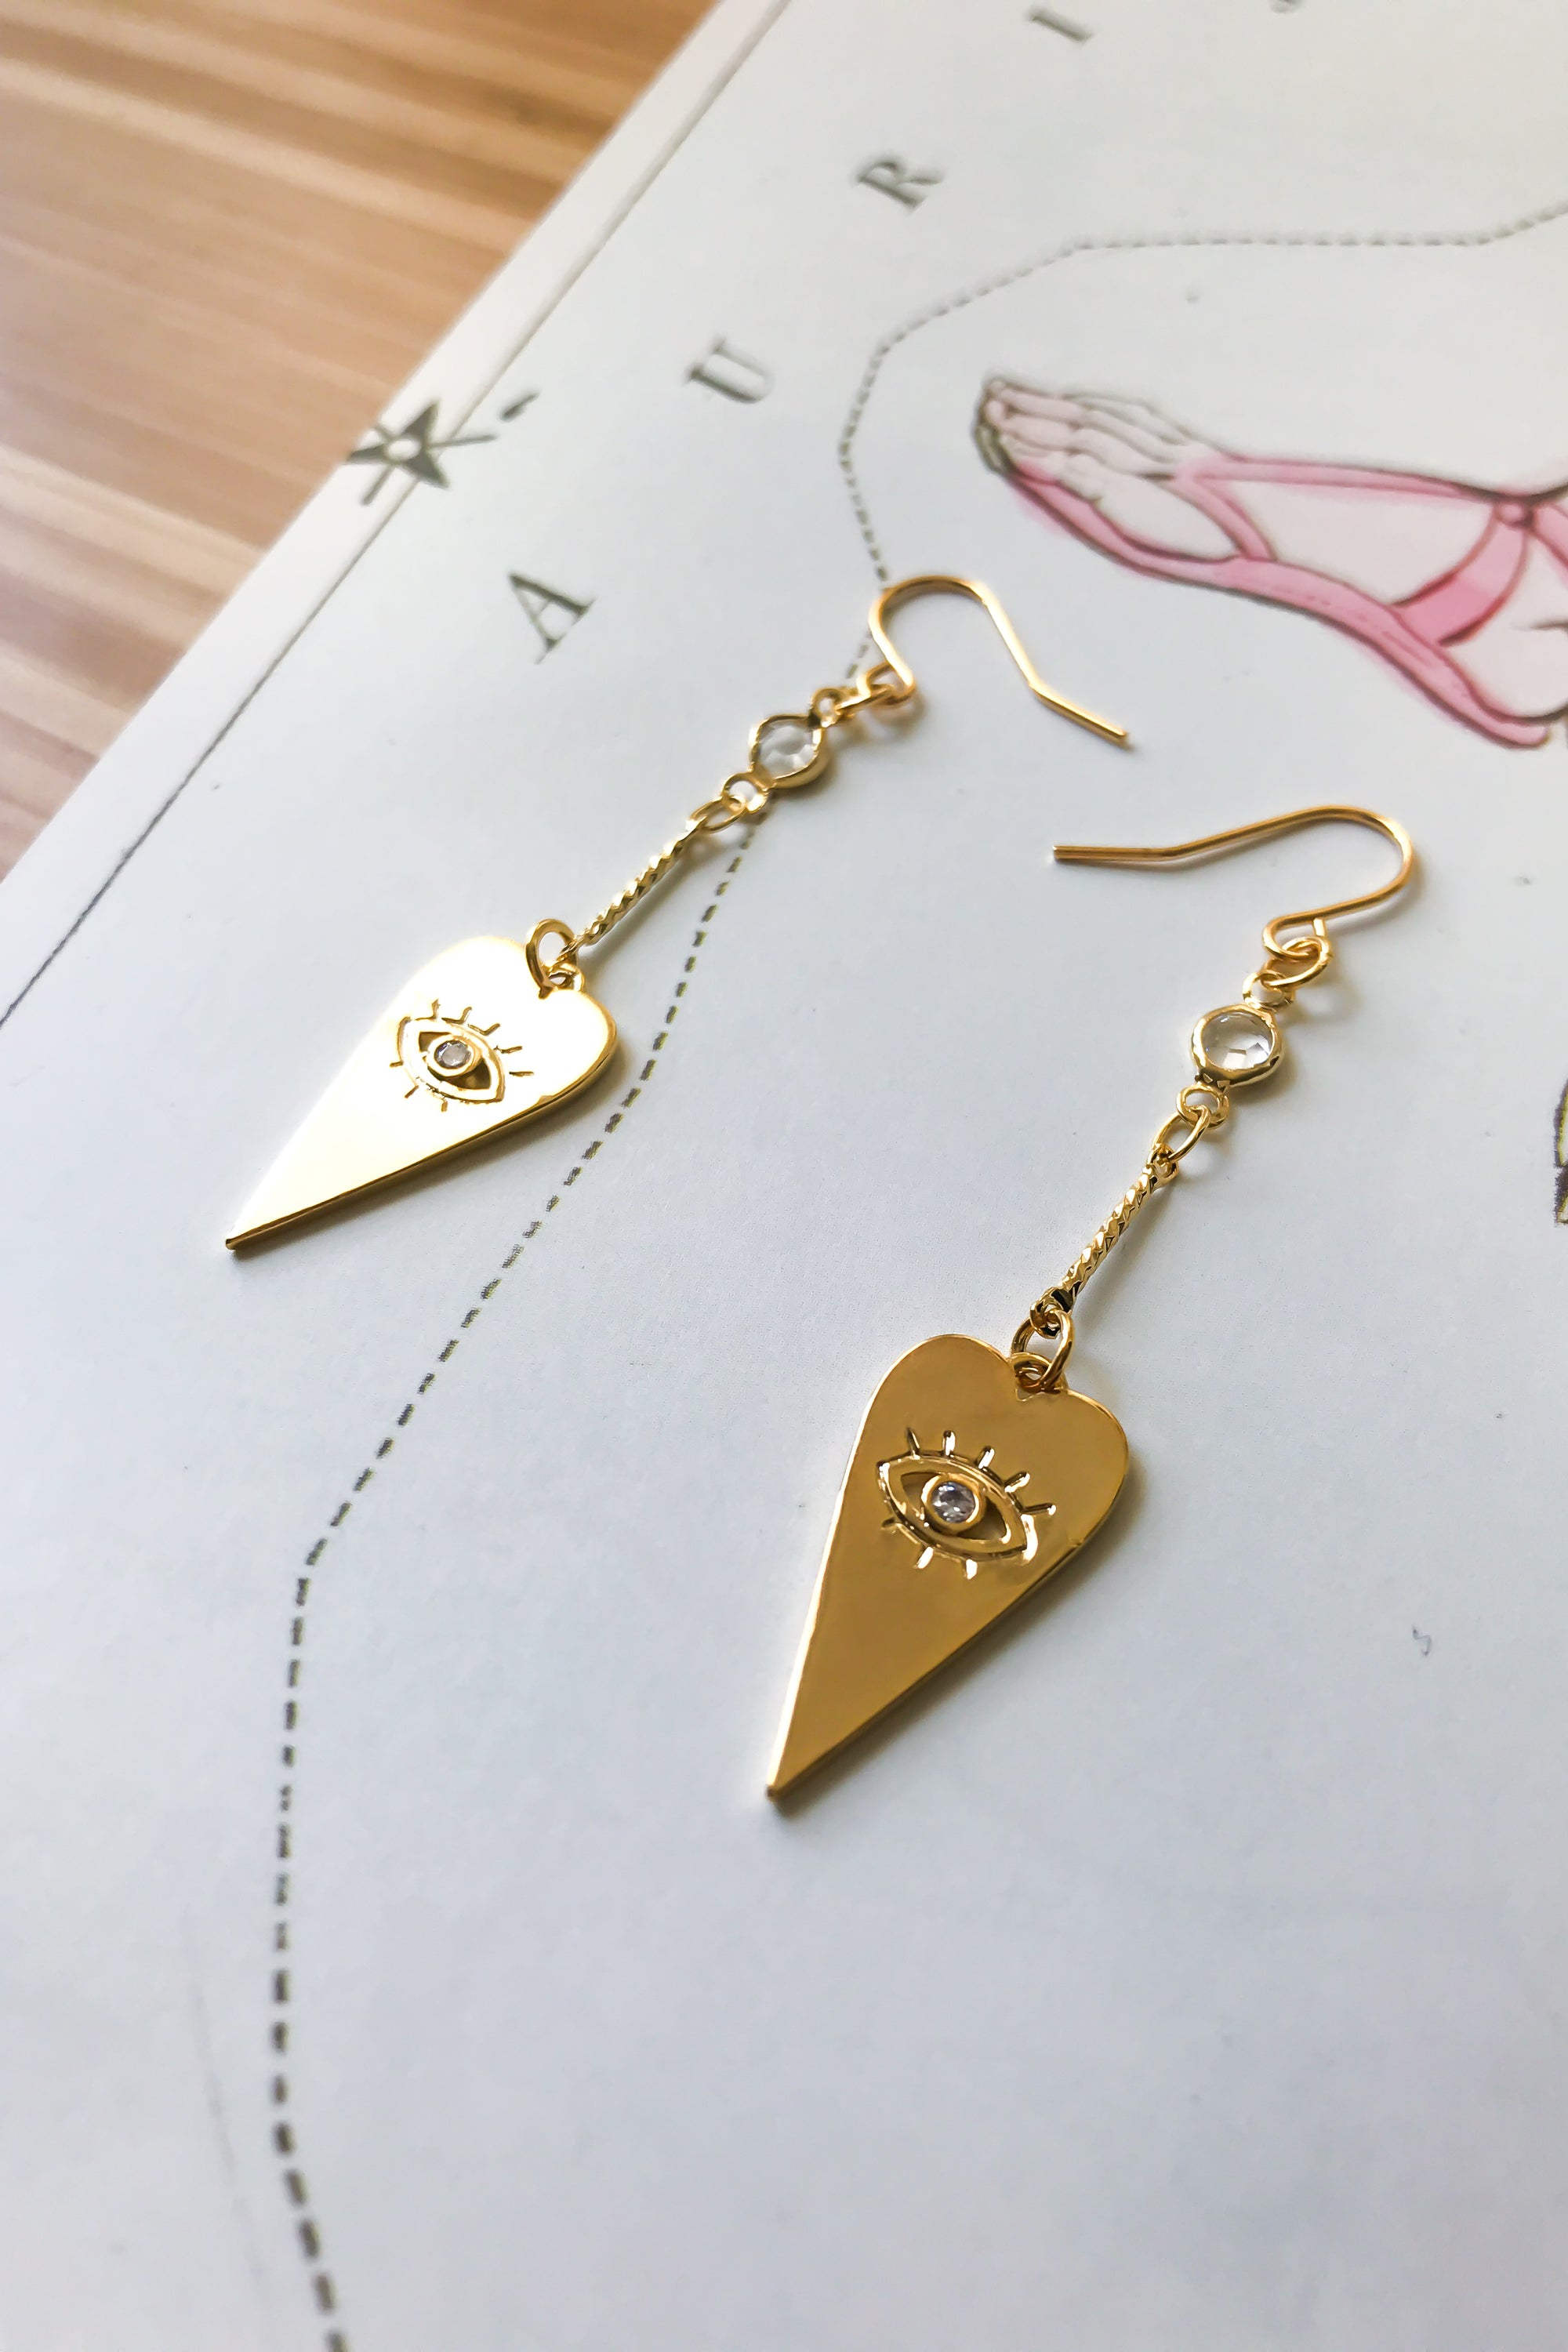 Love + Protection drop earrings